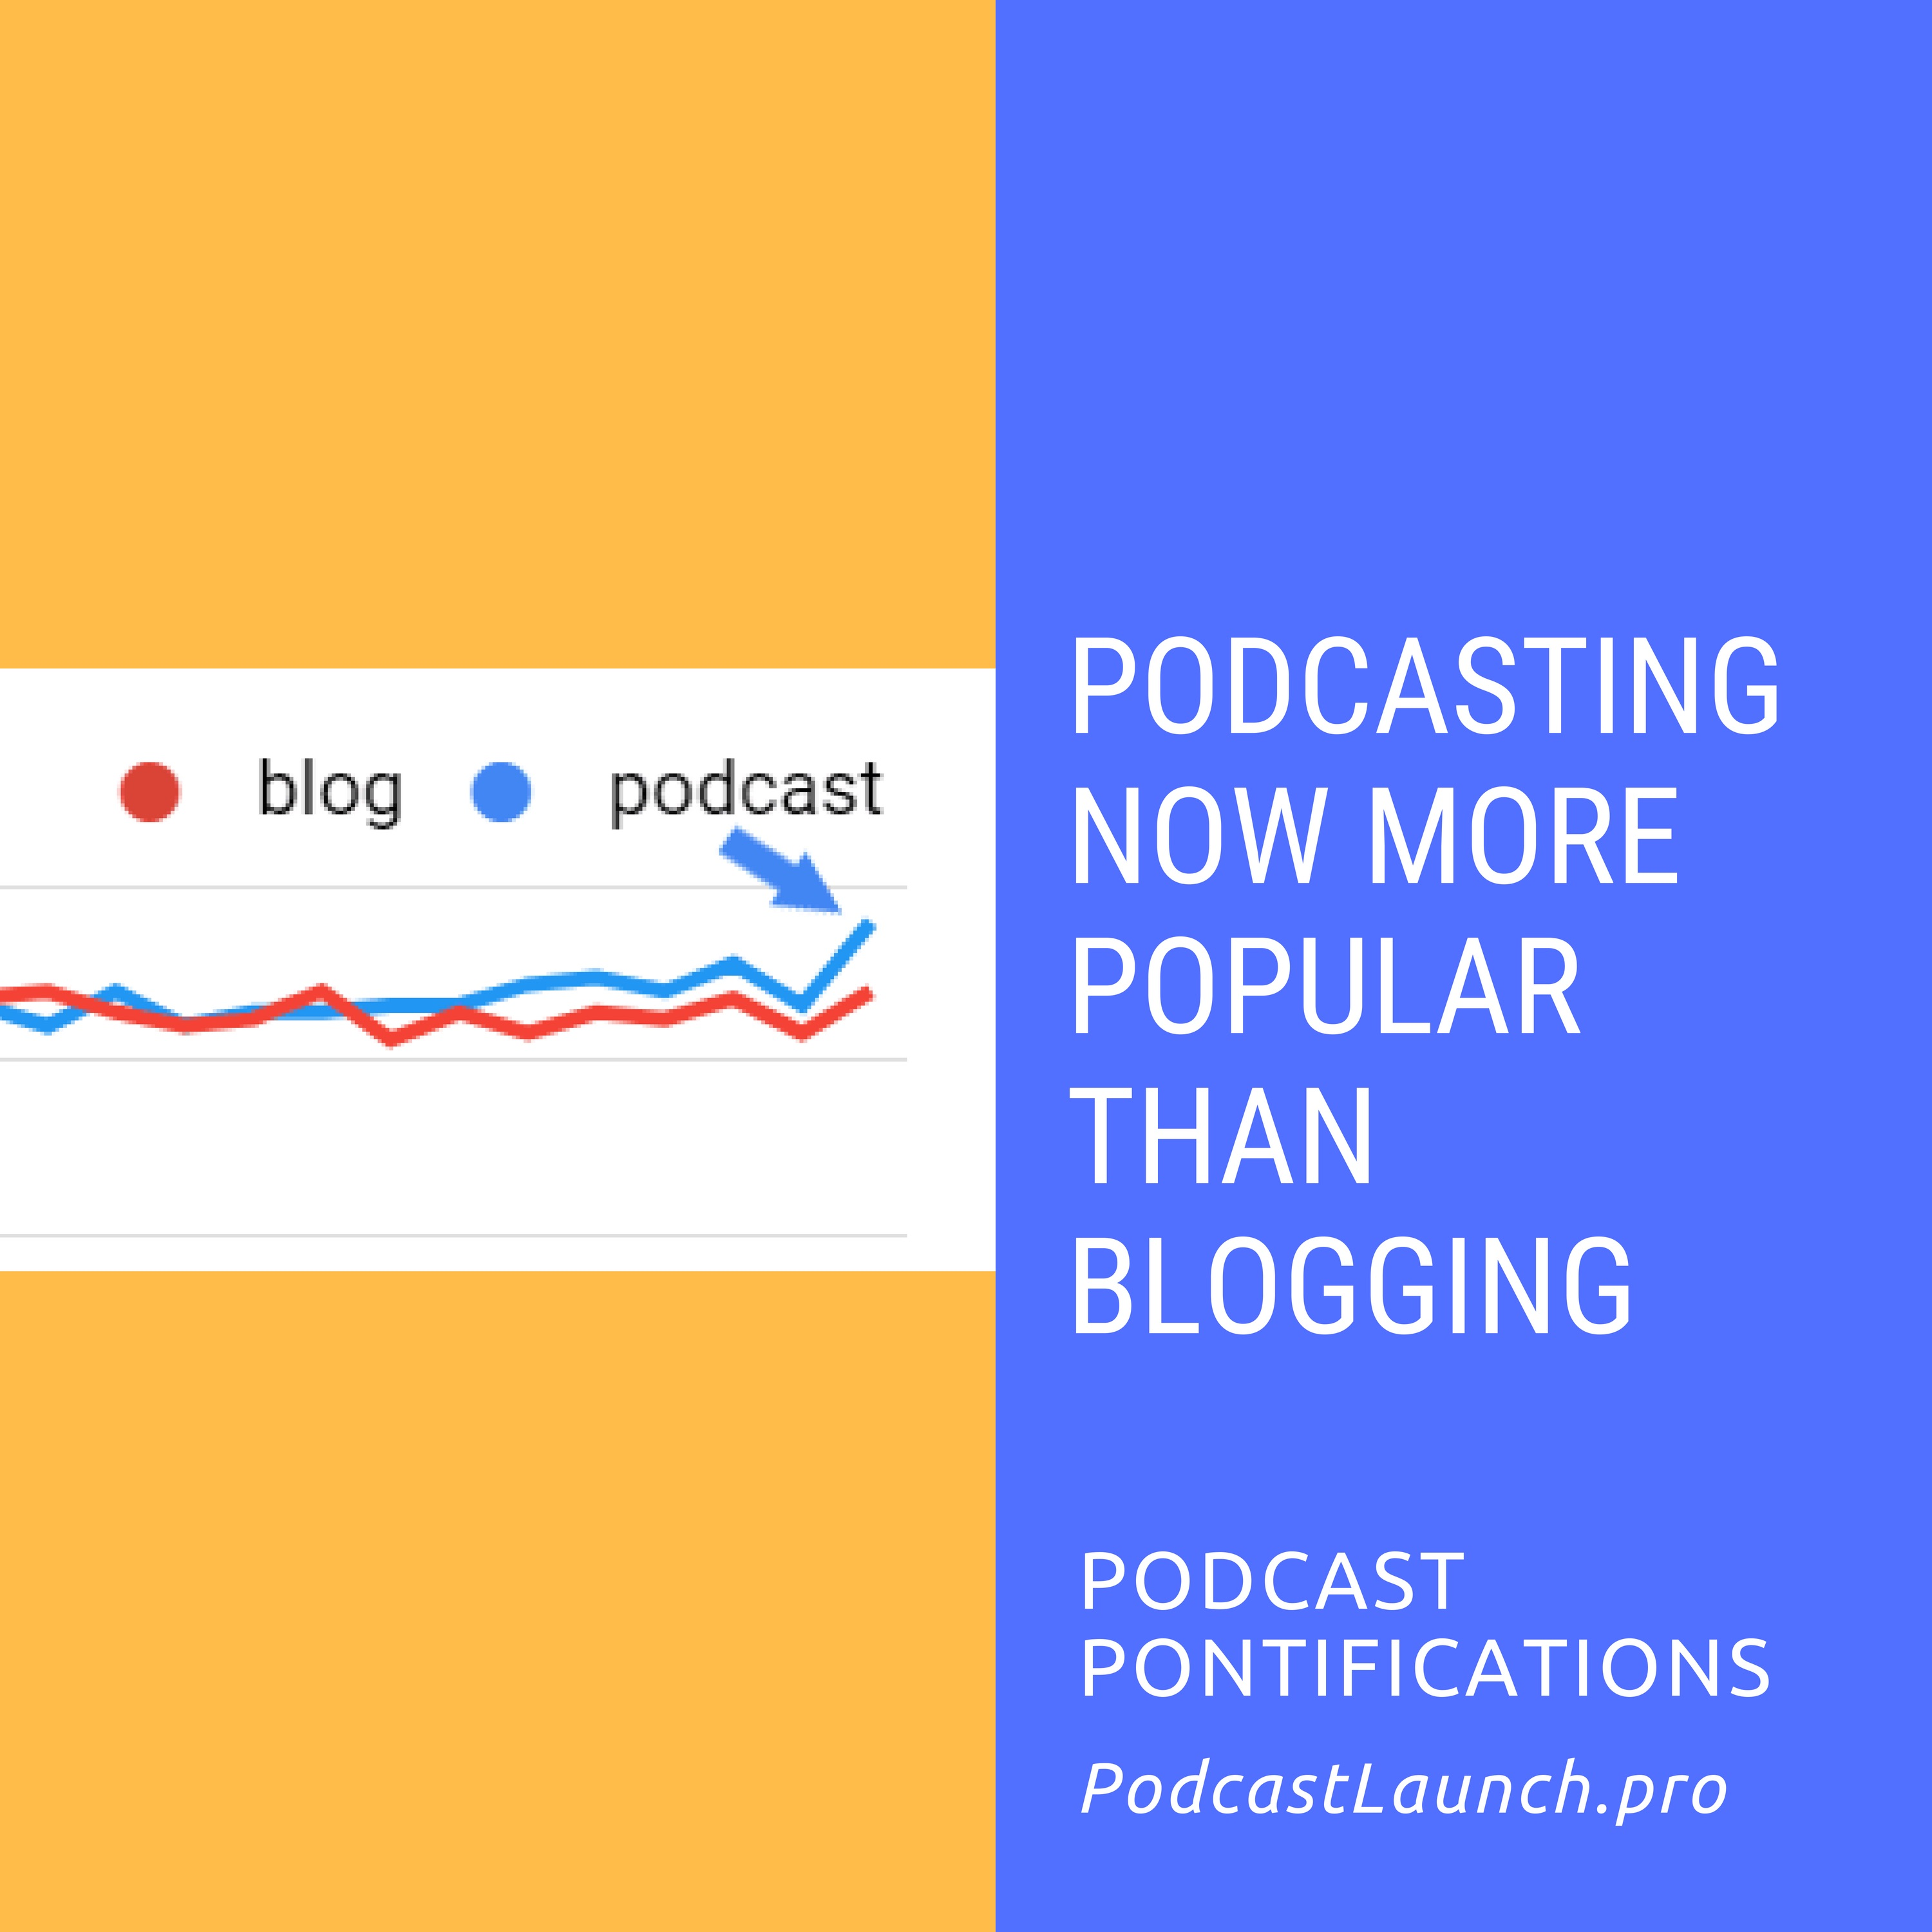 Podcasting Now More Popular Than Blogging